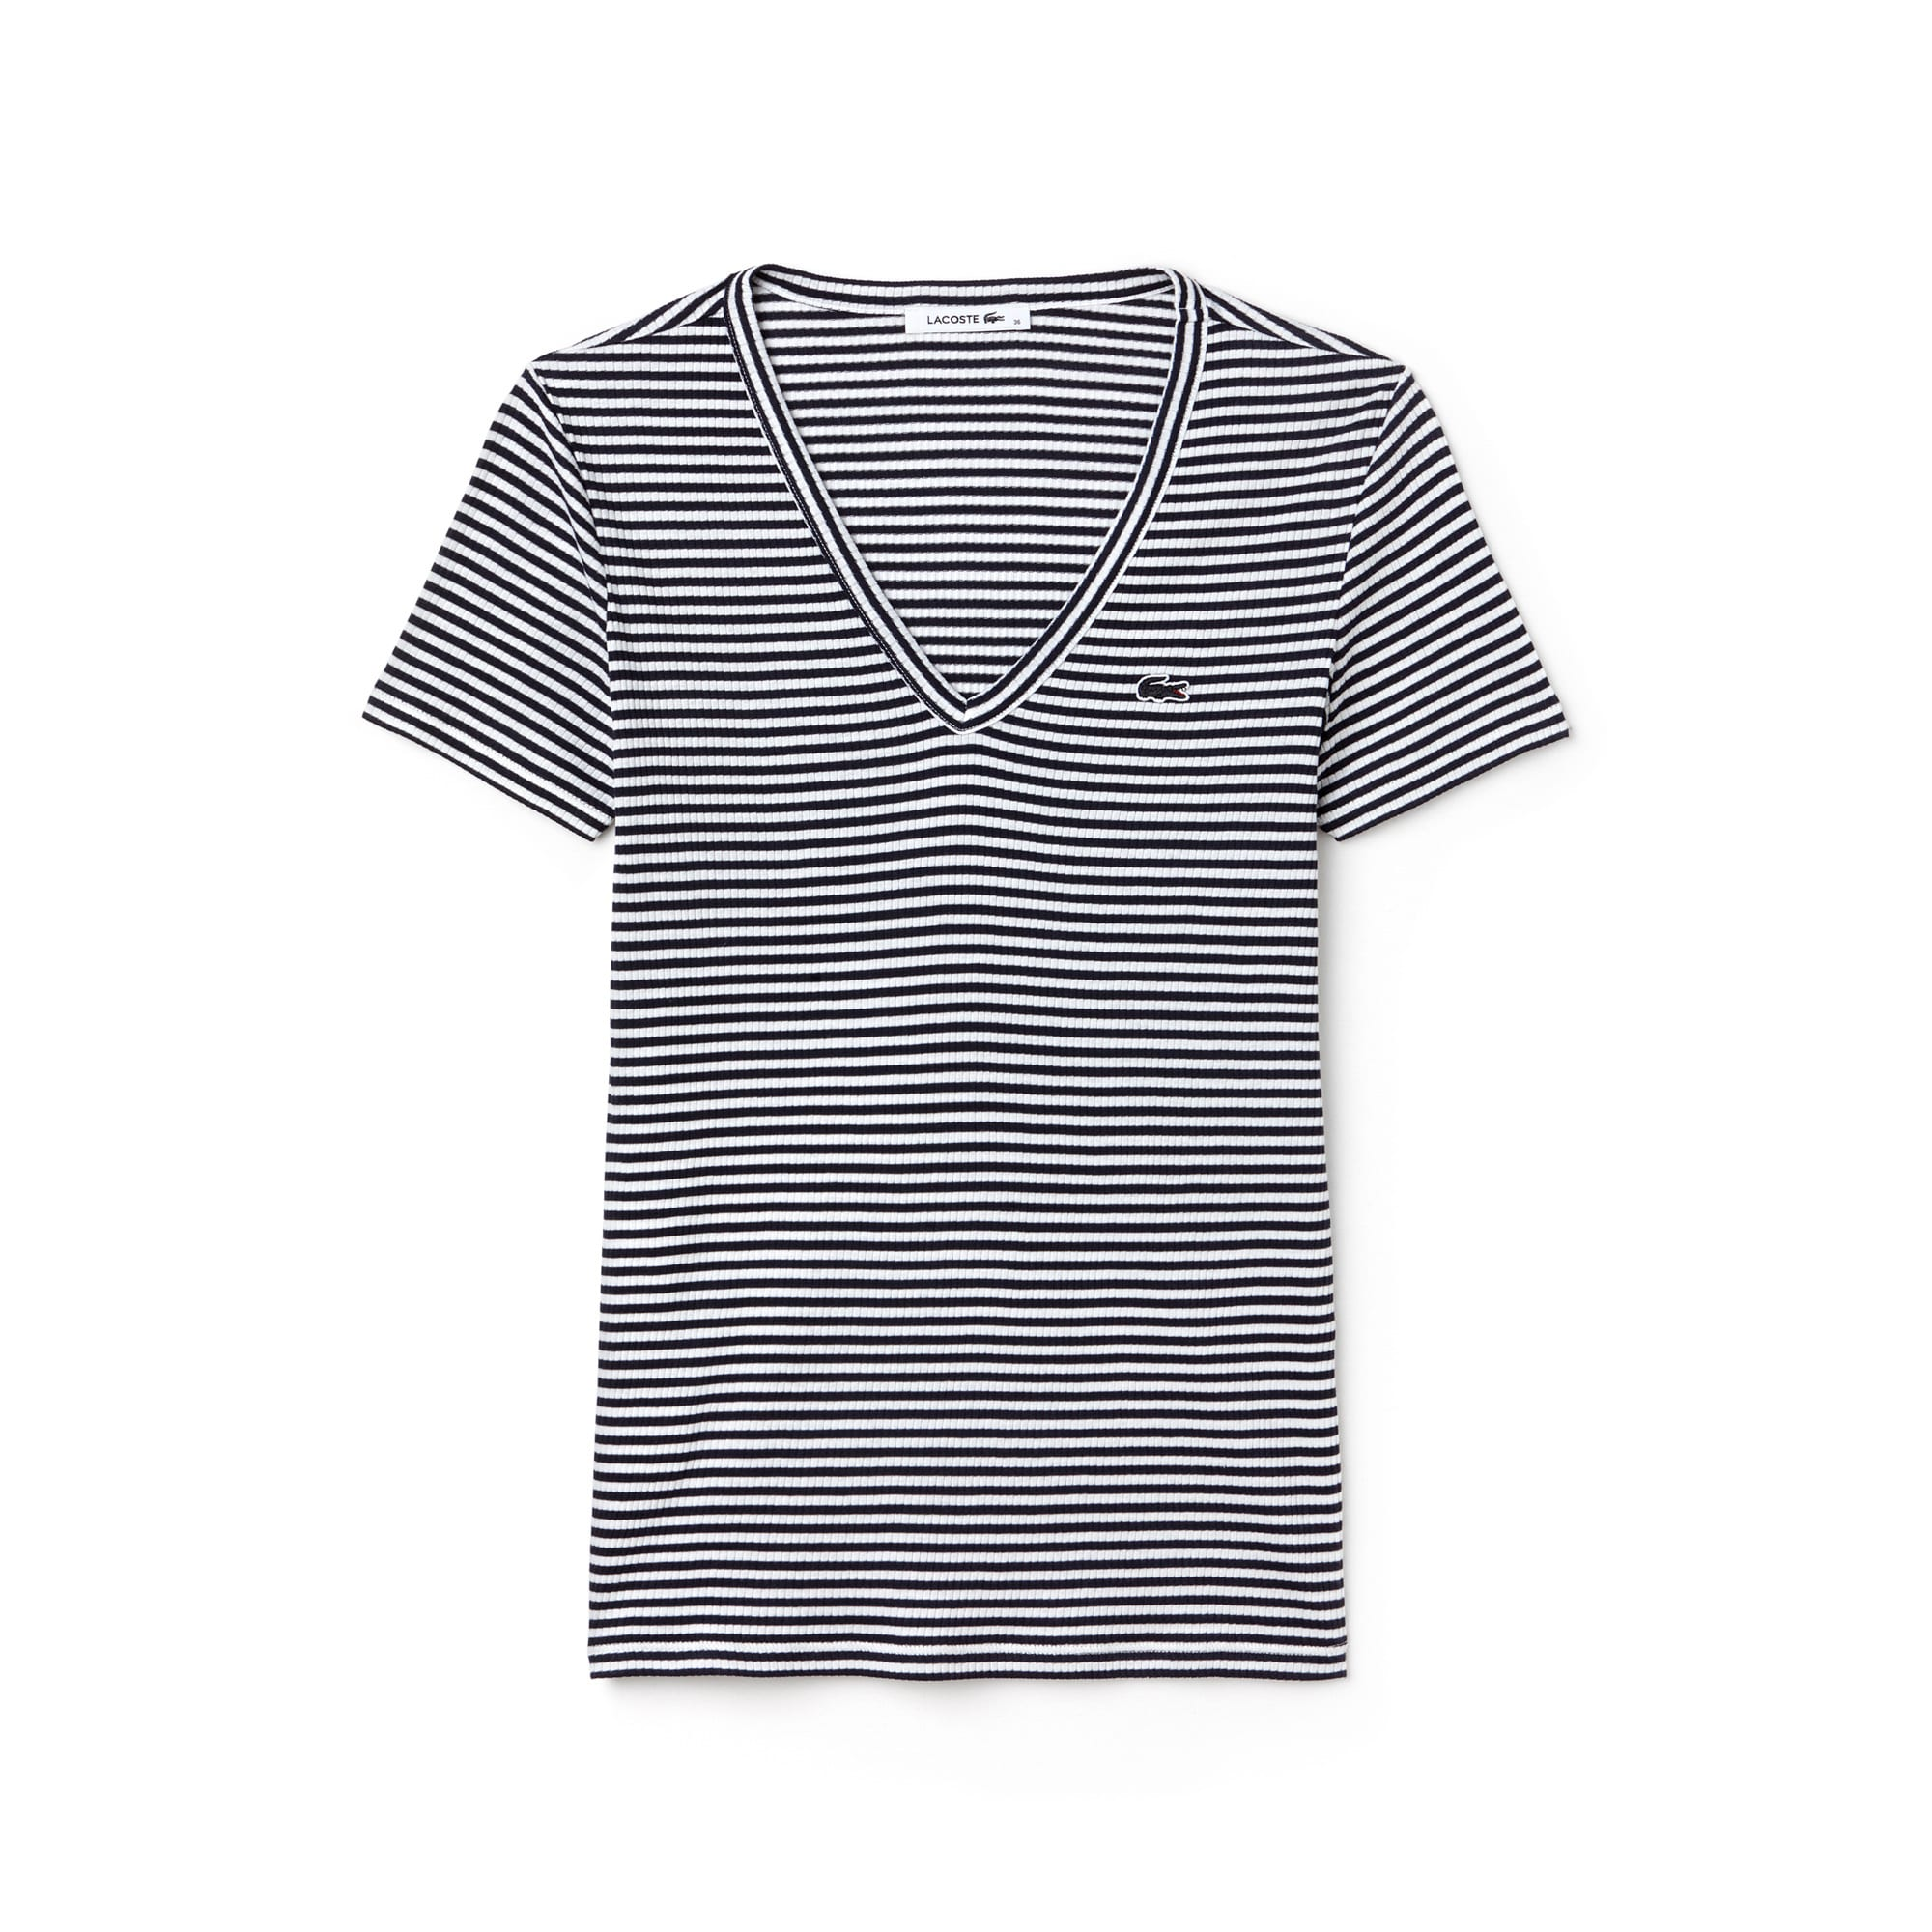 Women's Soft Striped Jersey V-Neck T-Shirt